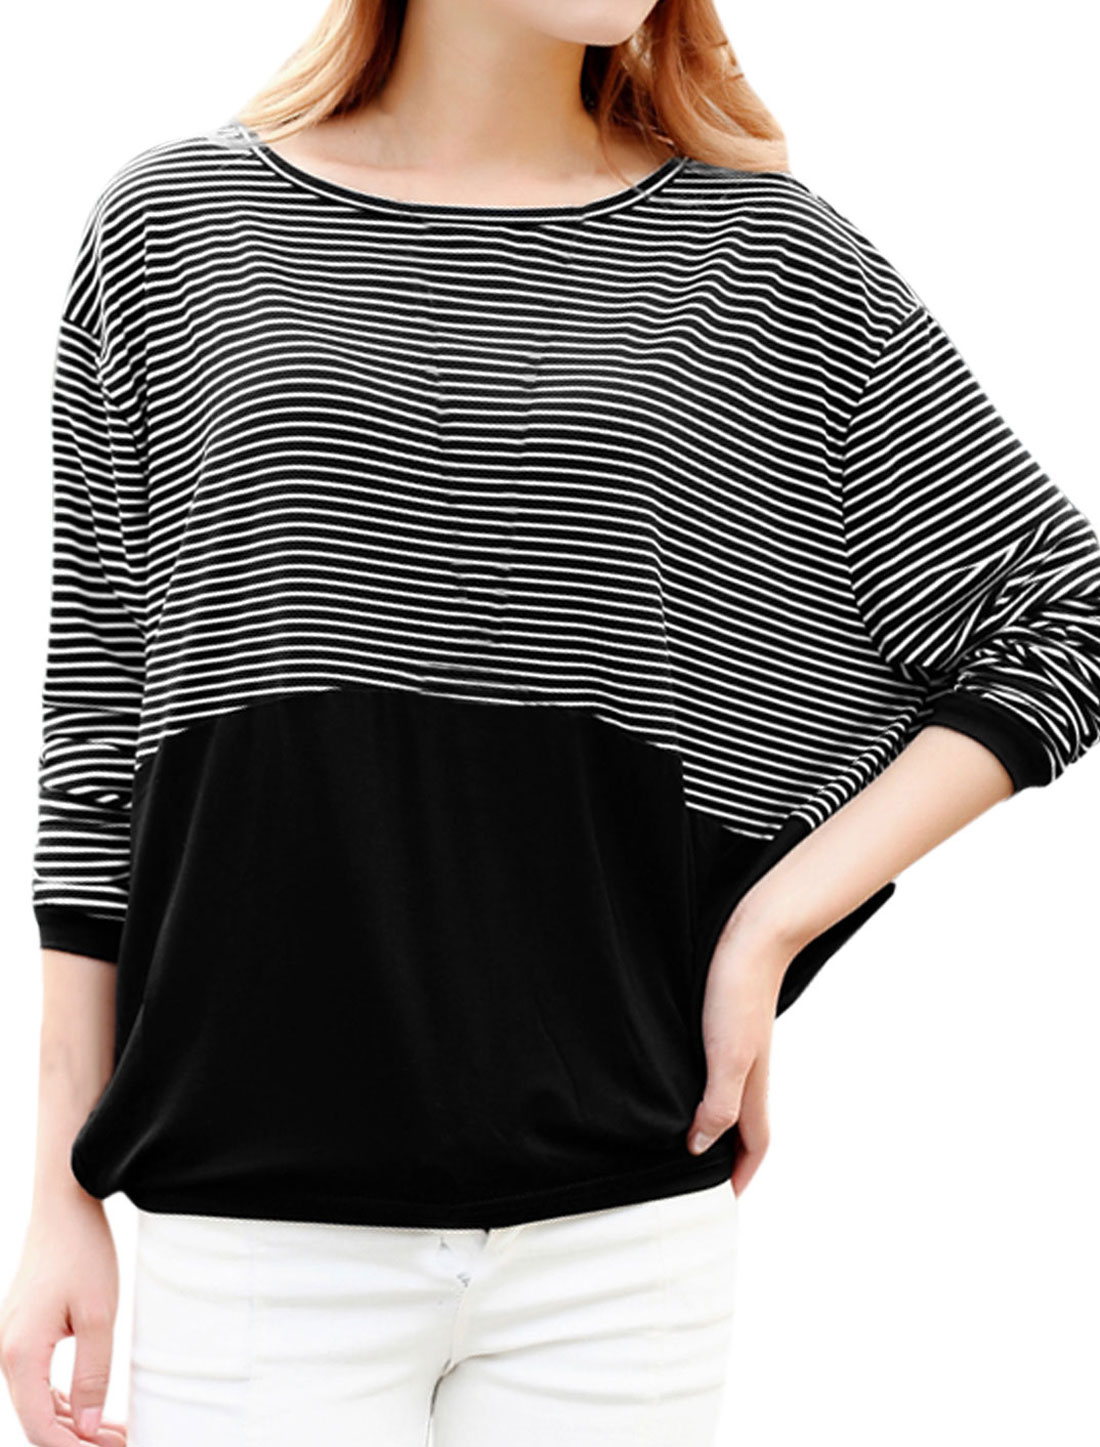 Lady Stripes Patched Design Contrast Color Loose Fit Top Black XS